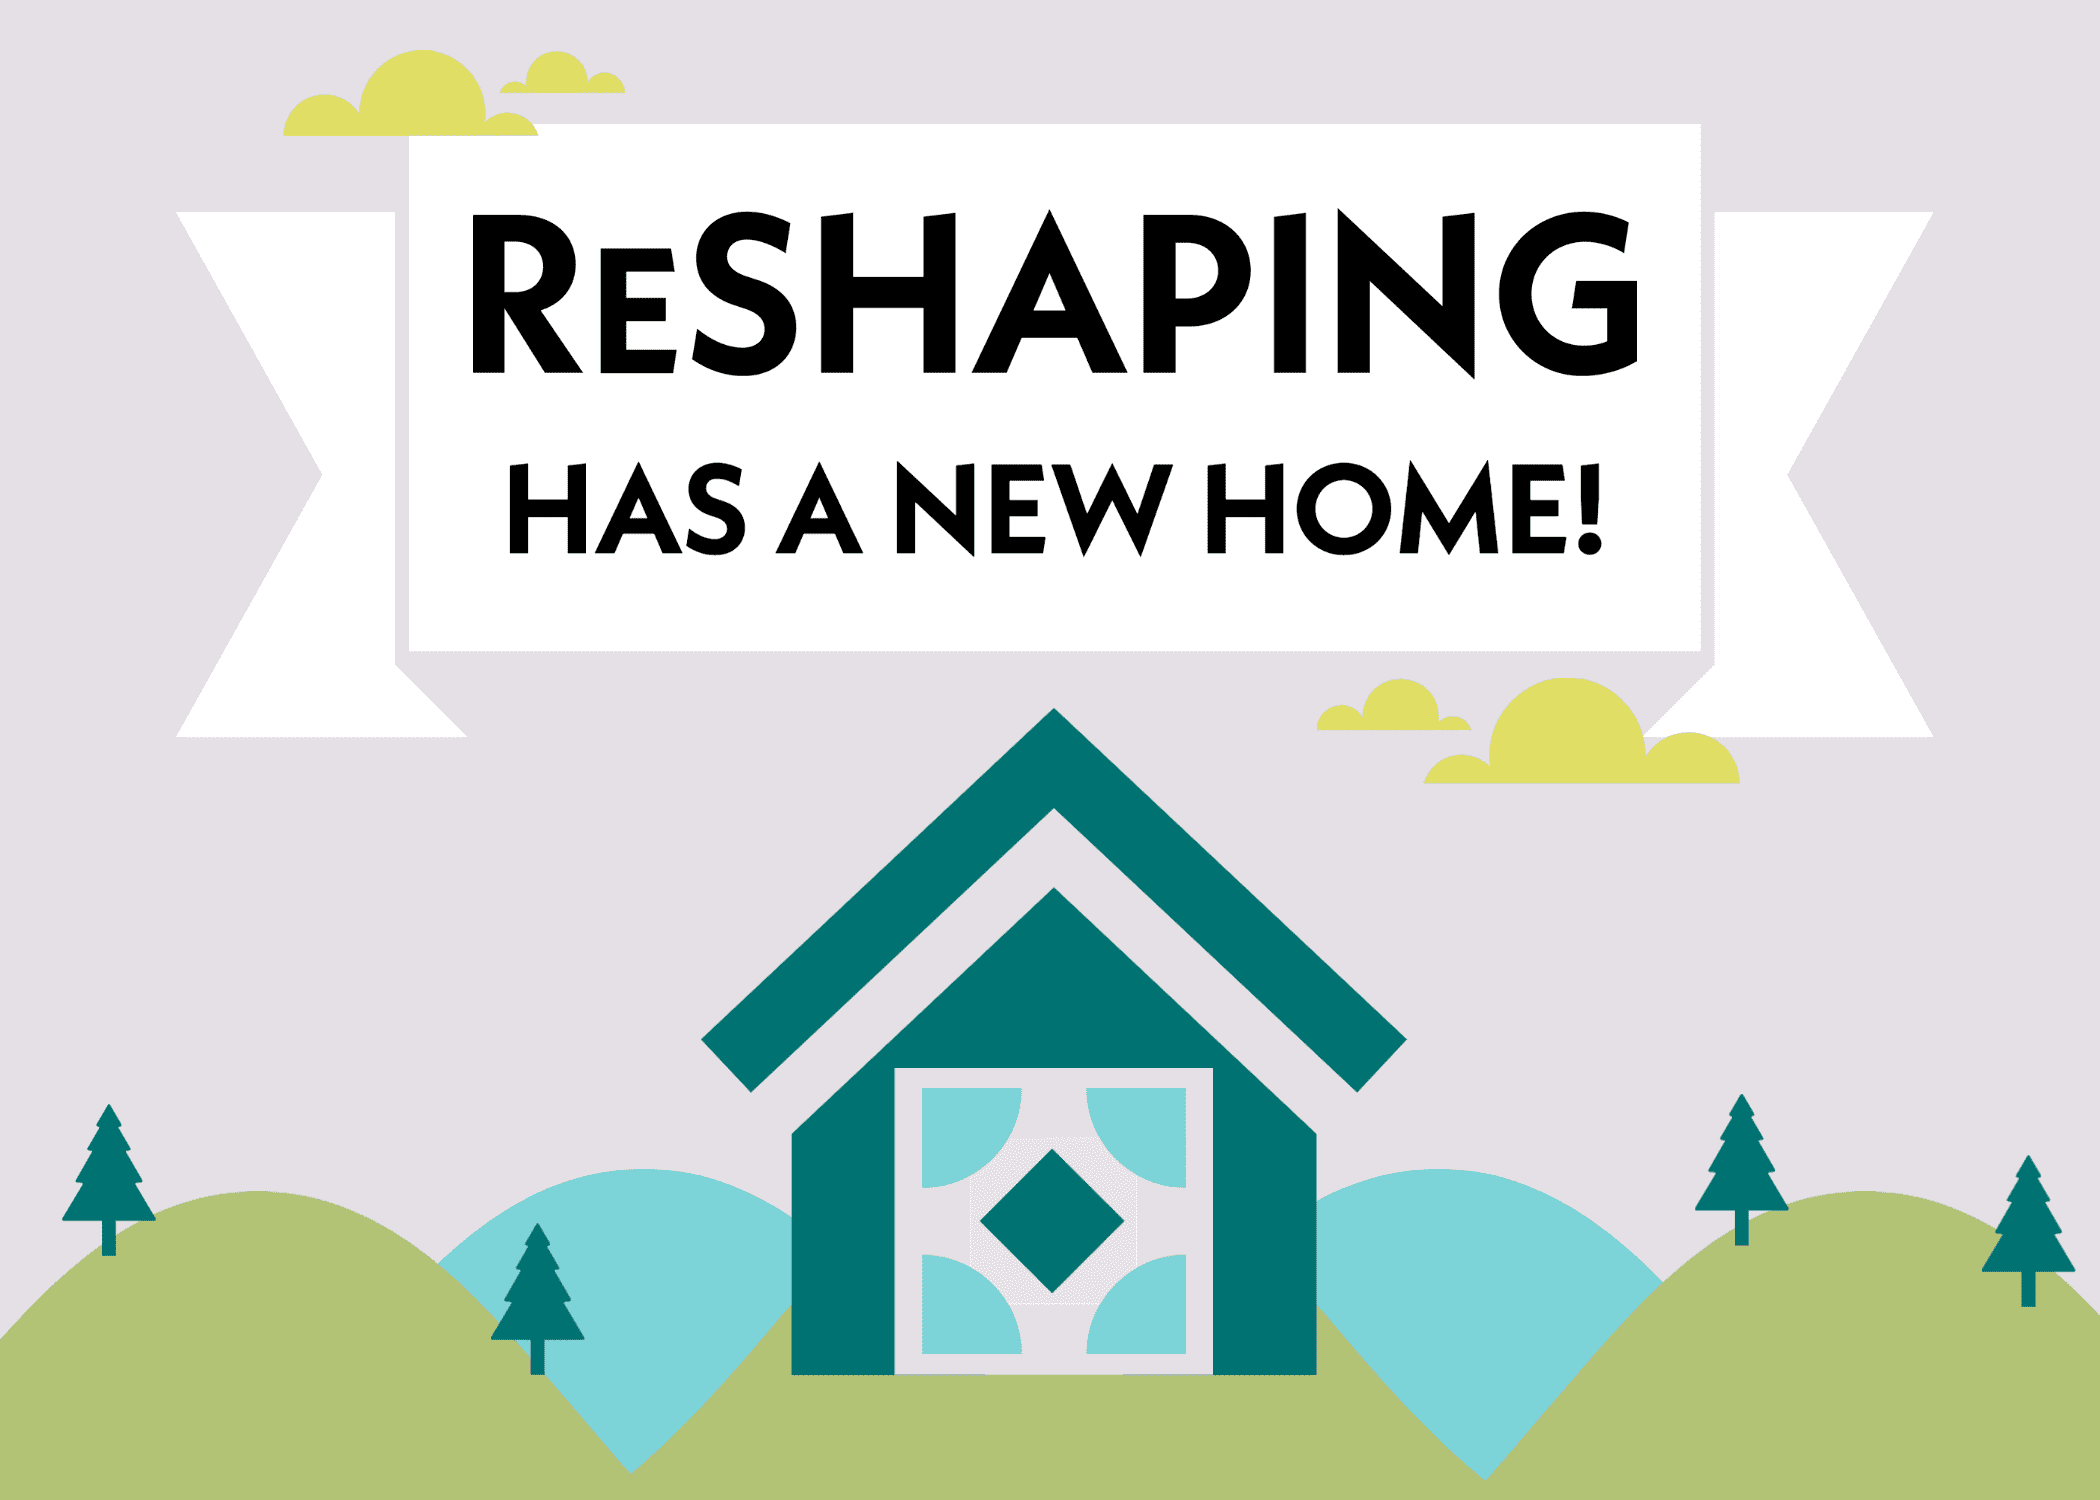 Teal house with ReSHAPING logo inside set on green and blue hills with evergreen trees and a banner that says ReSHAPING has a new home!